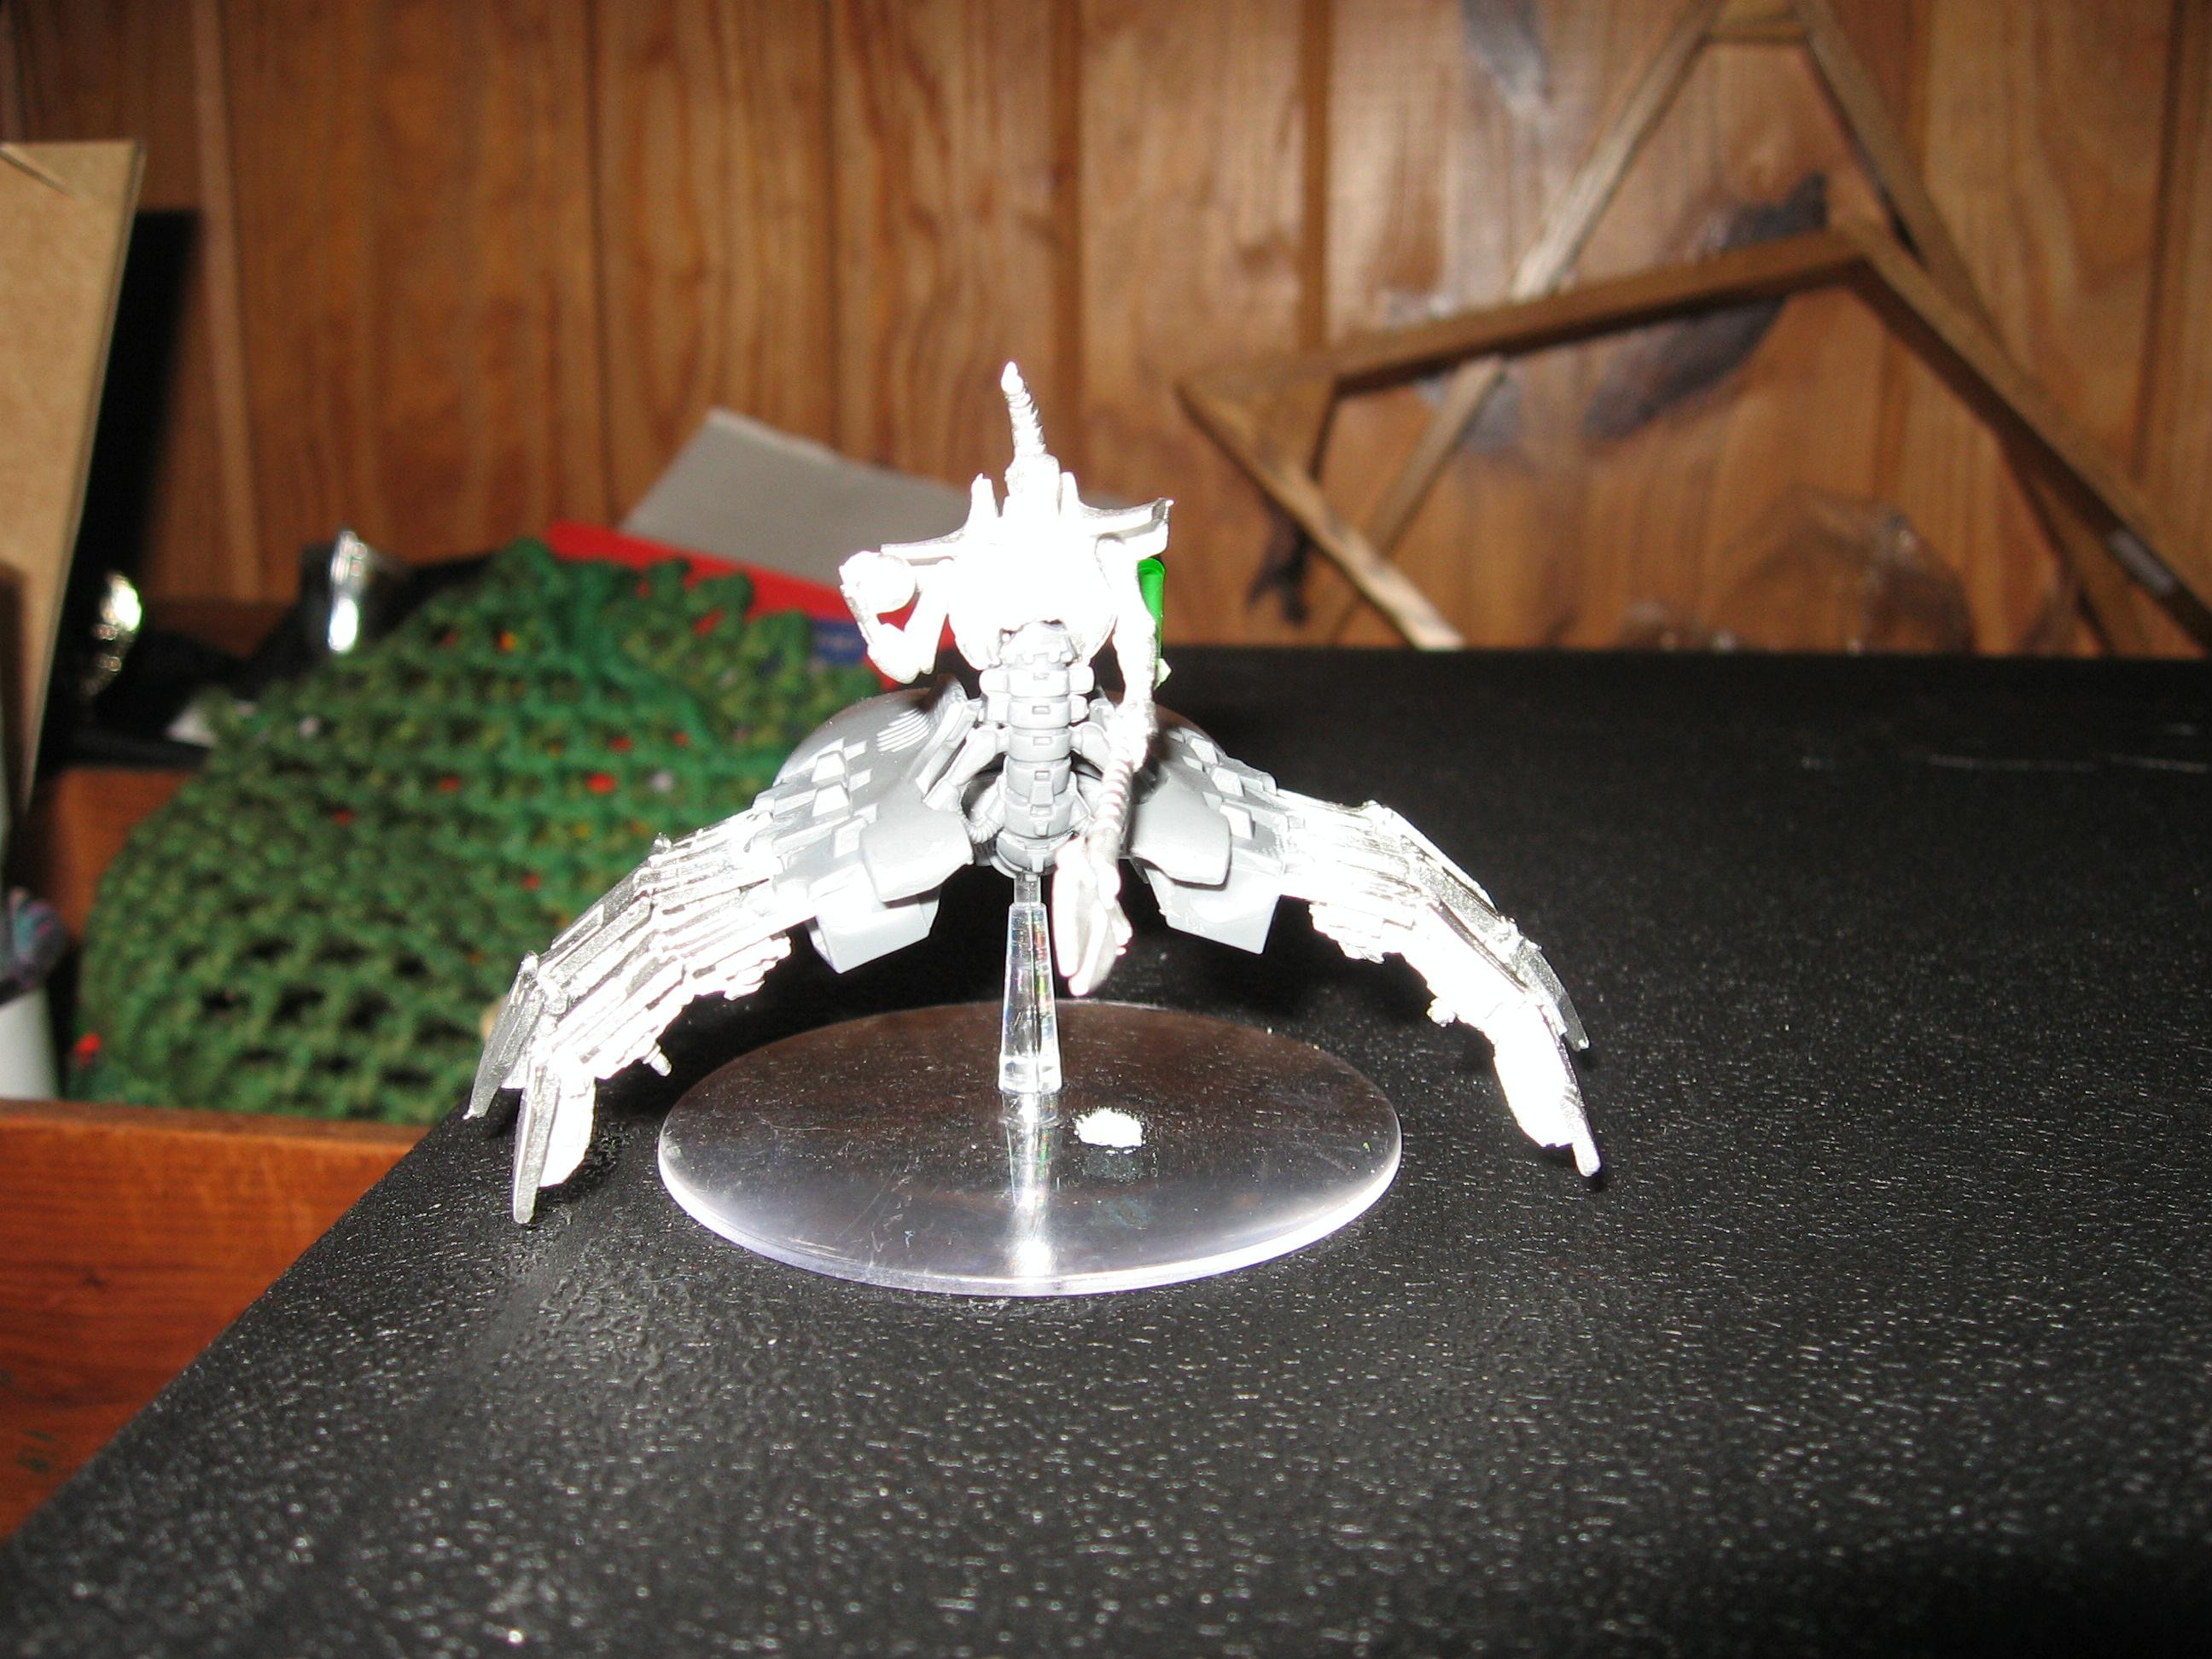 Conversion, Destroyer, Necron Lord, Necrons, Poor Picture Quality, Warhammer 40,000, Work In Progress